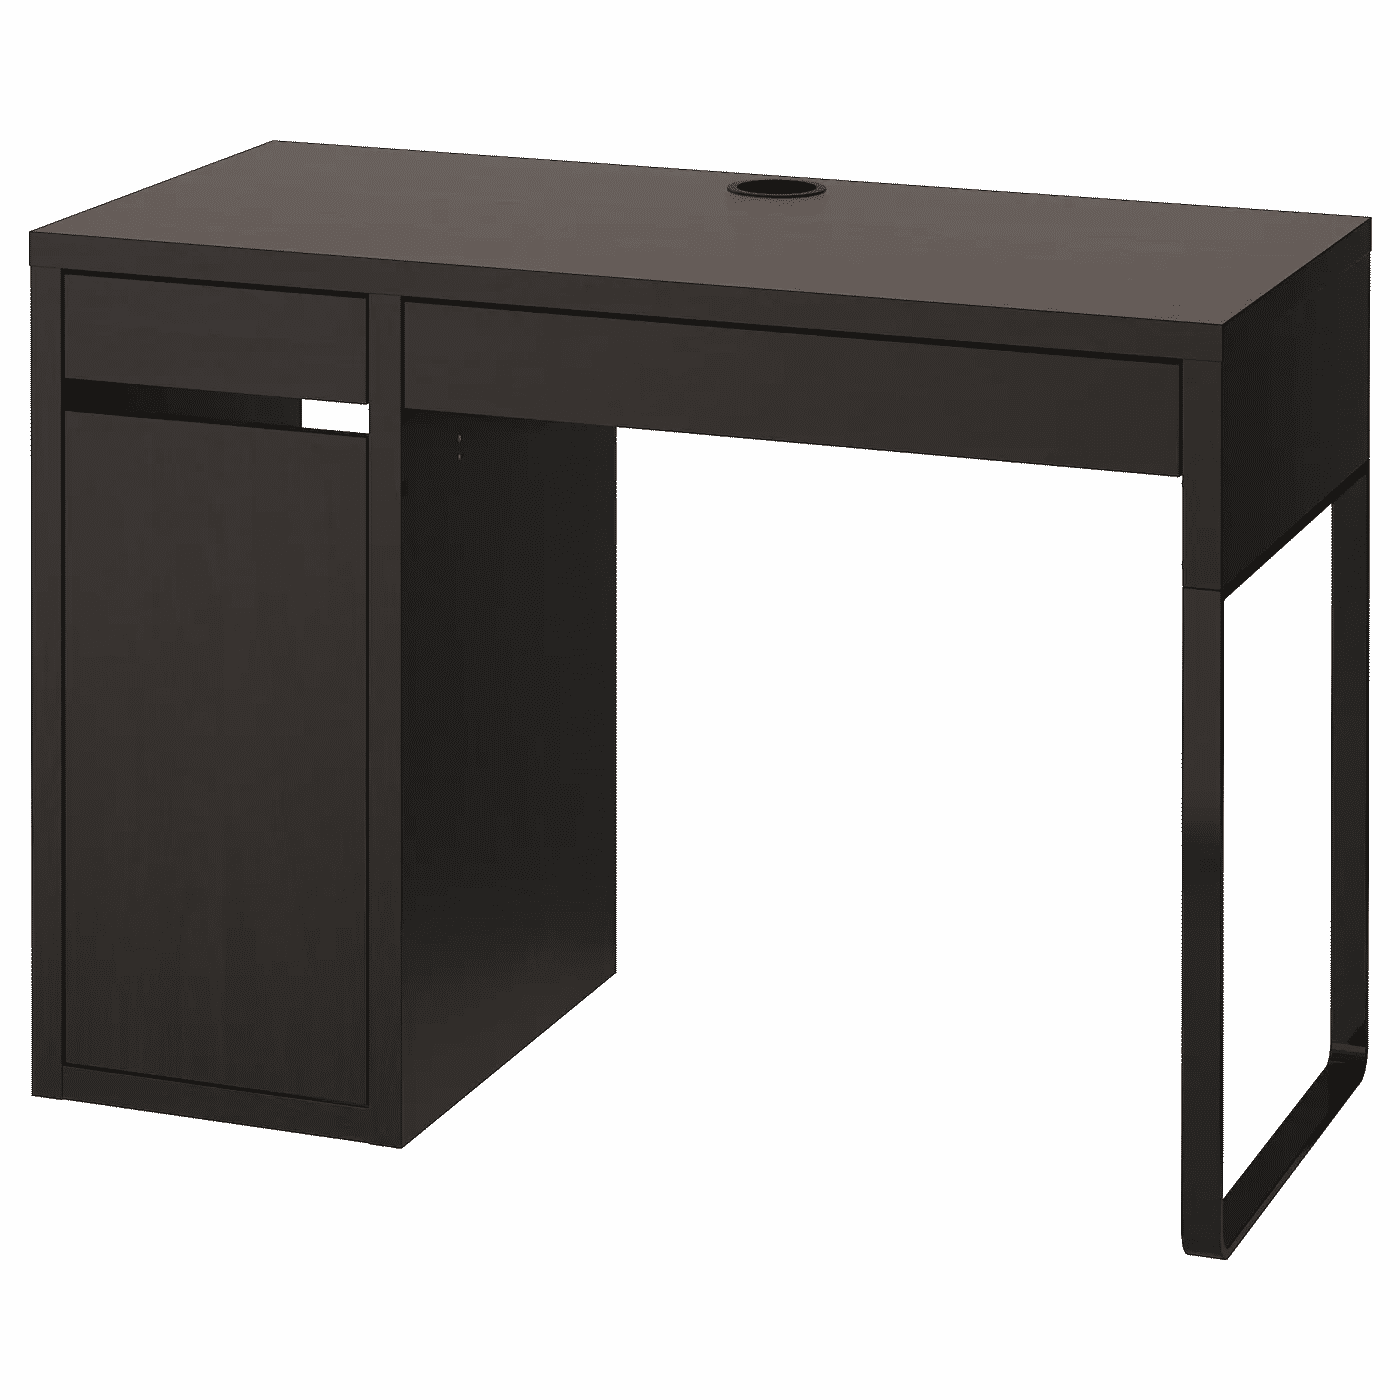 15 Best Ikea Desks For Home Review 2020 Ikea Product Reviews